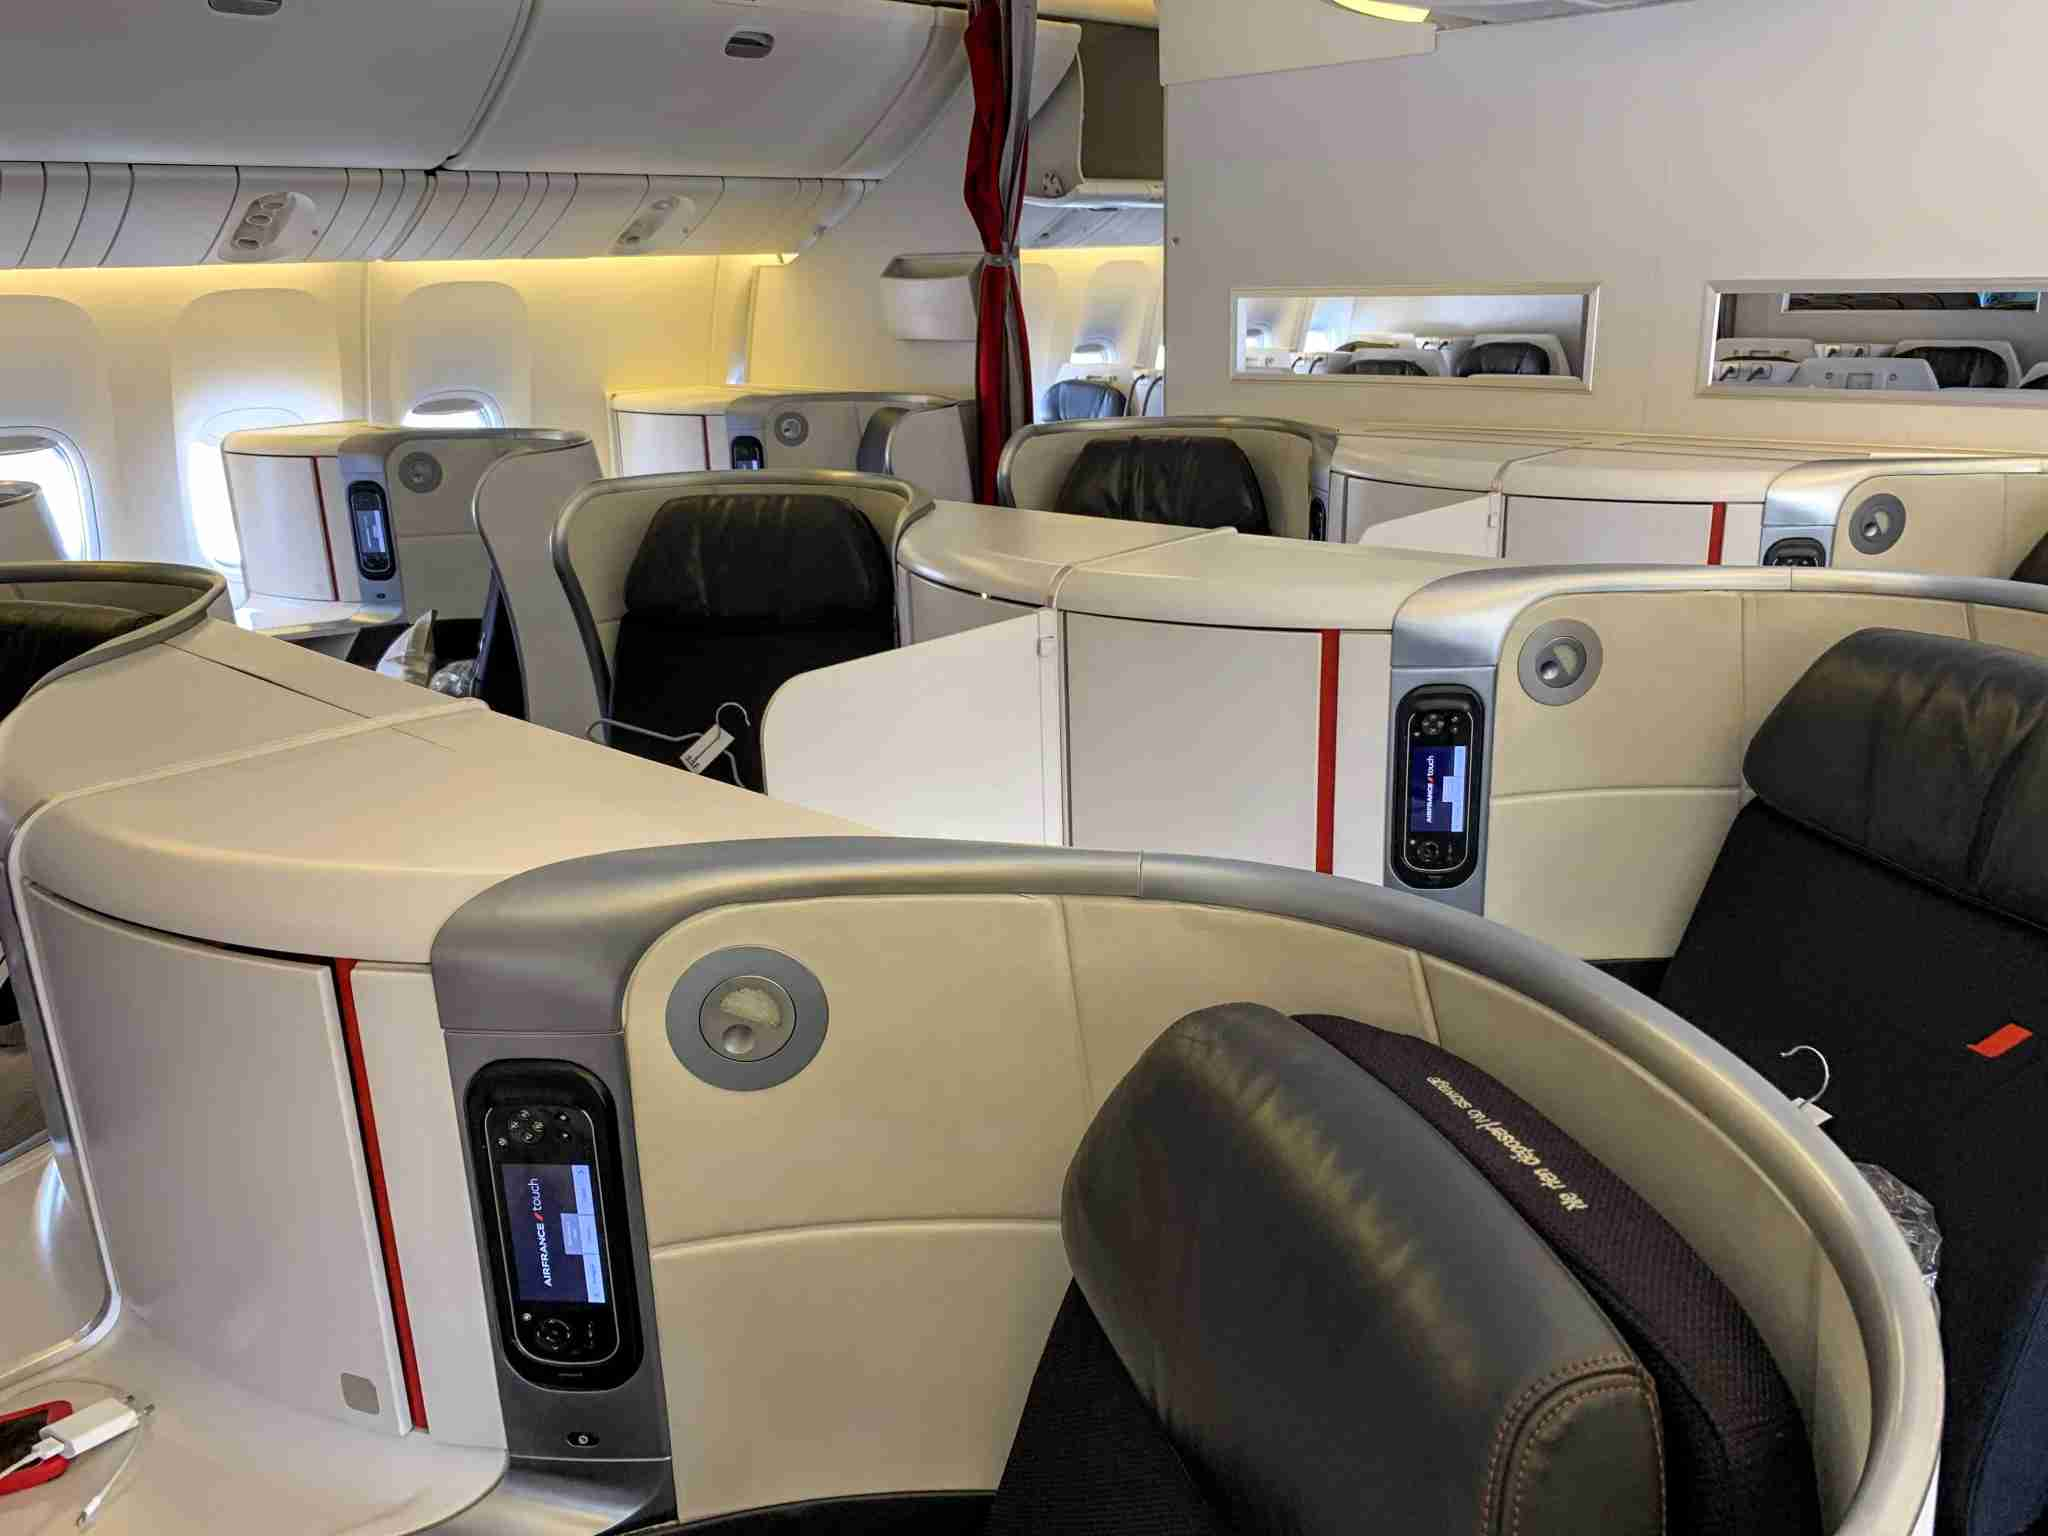 Air France Boeing 777 Business Class Seat rear cabin